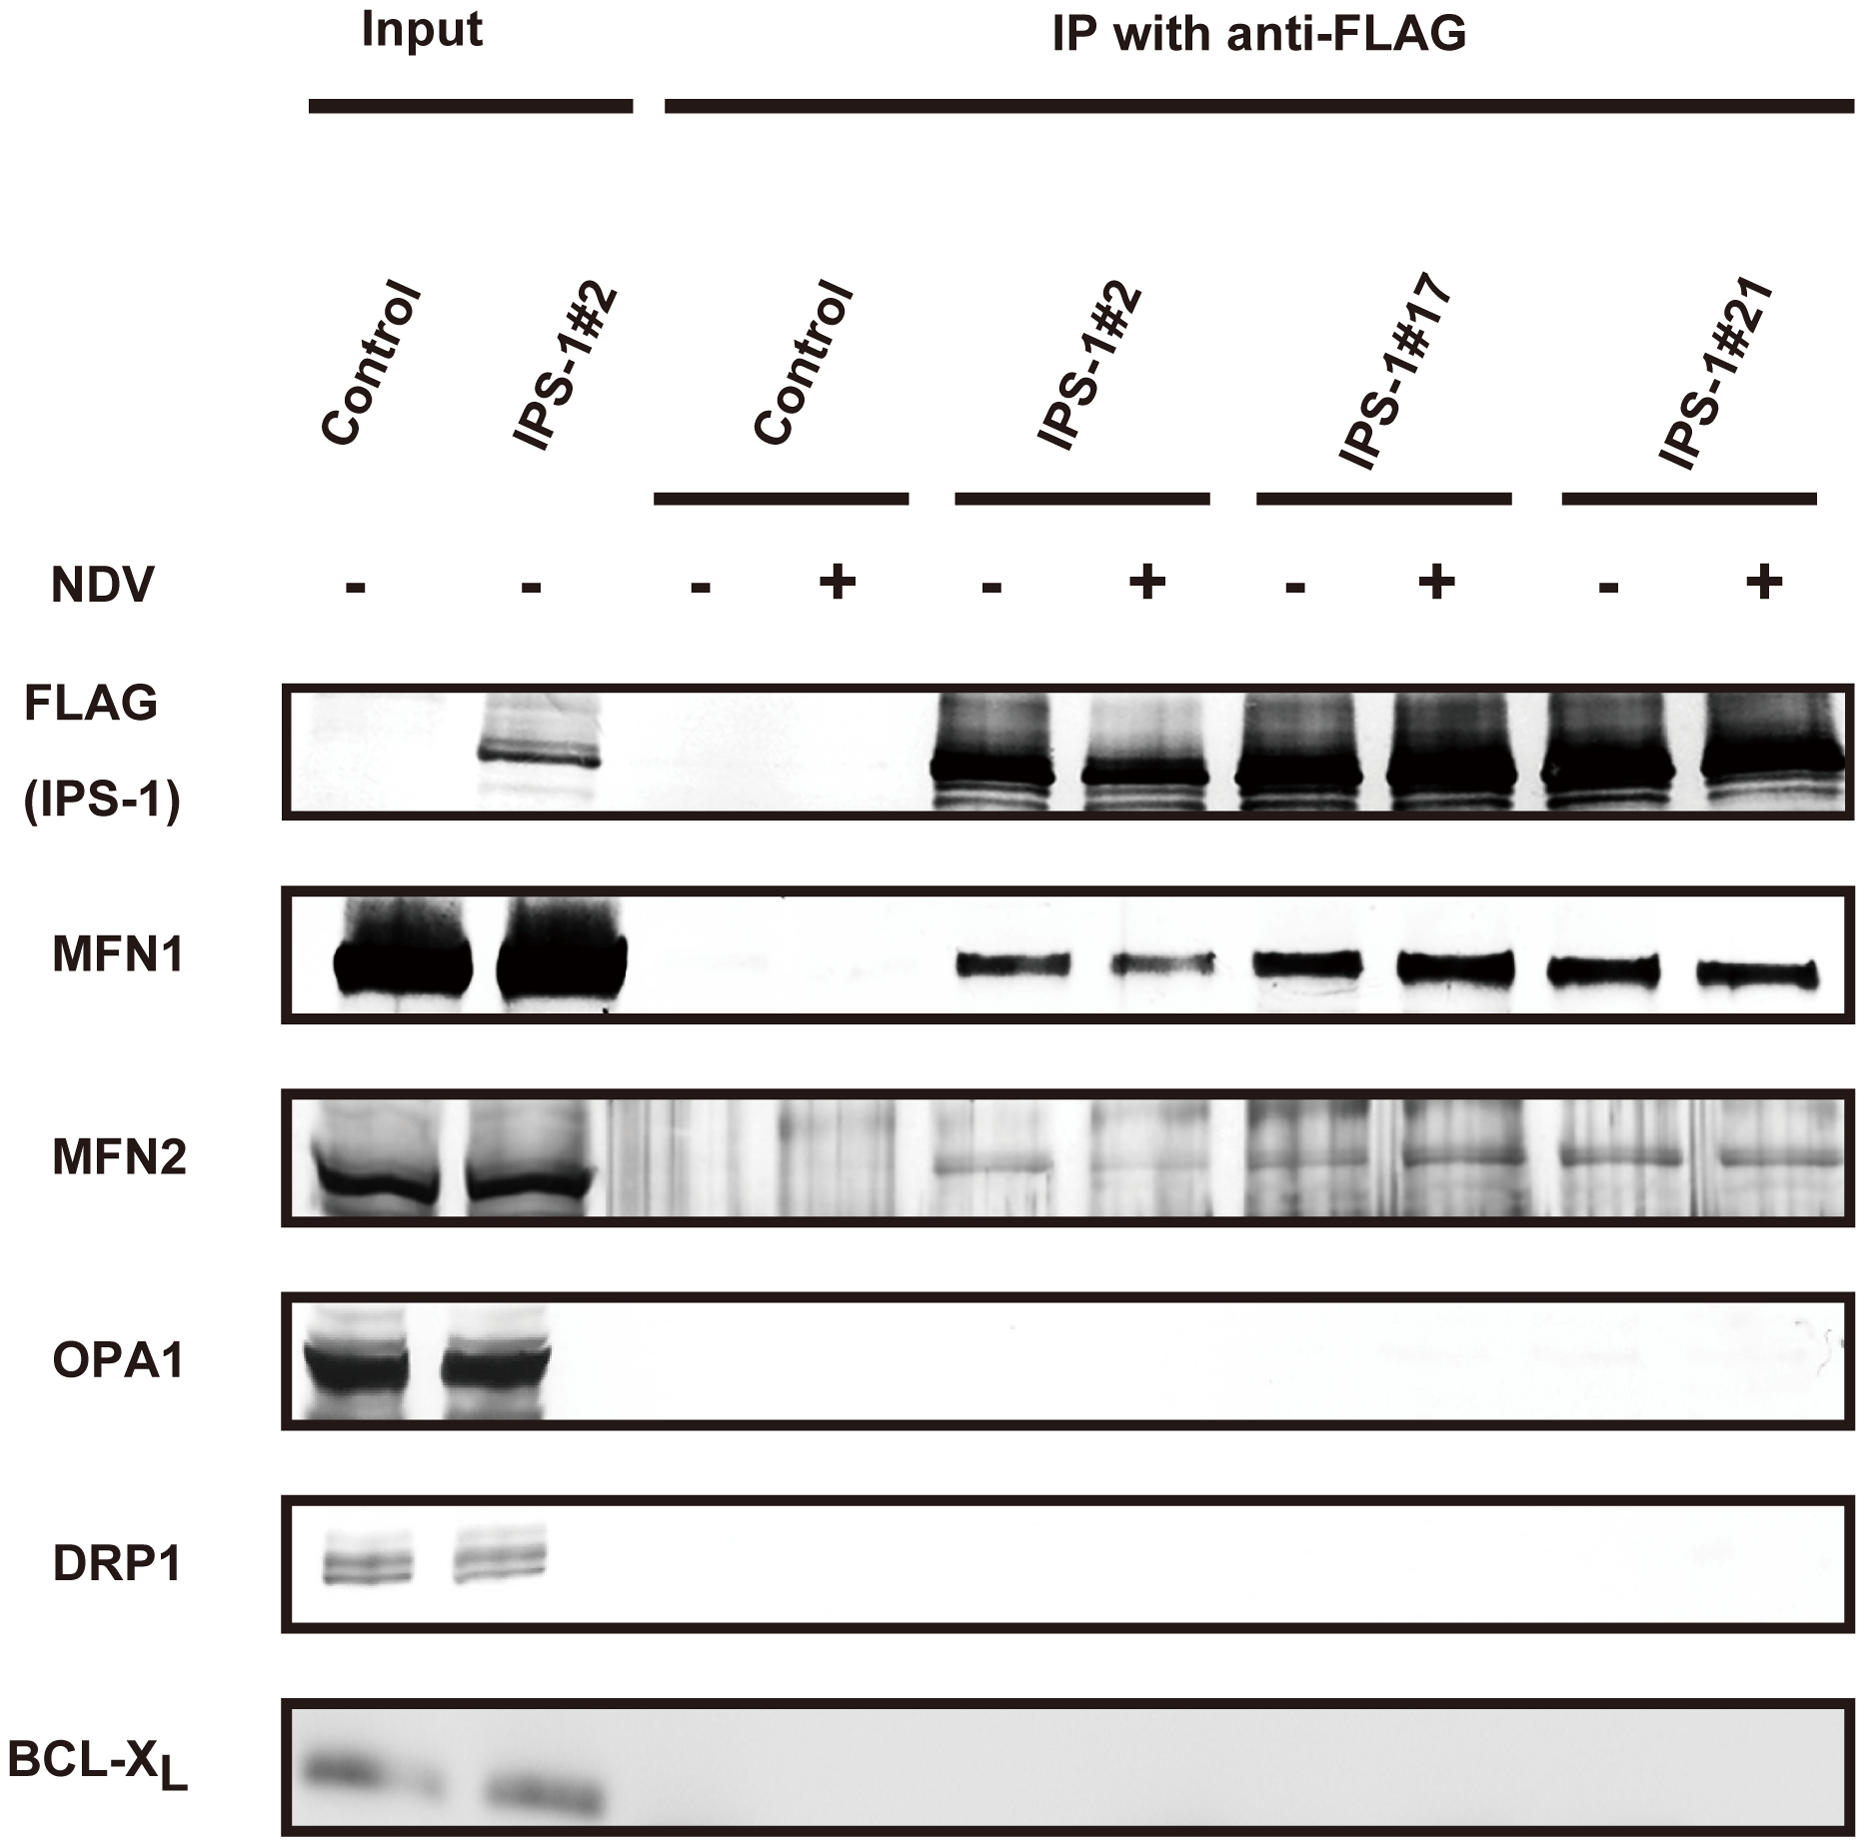 IPS-1 interacts with MFN1 and MFN2.